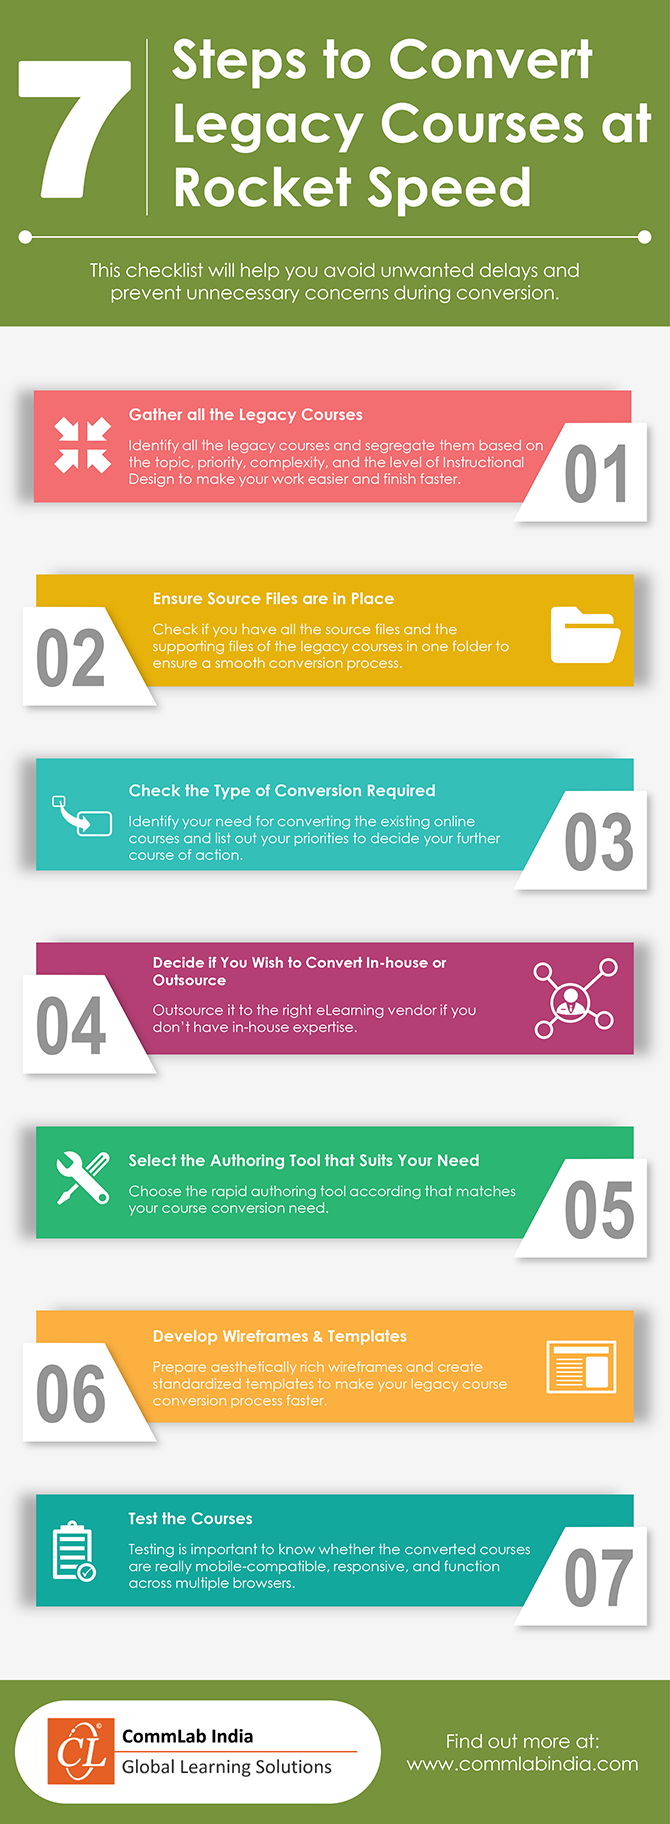 7 Steps to Convert Legacy Courses at Rocket Speed [Infographic]